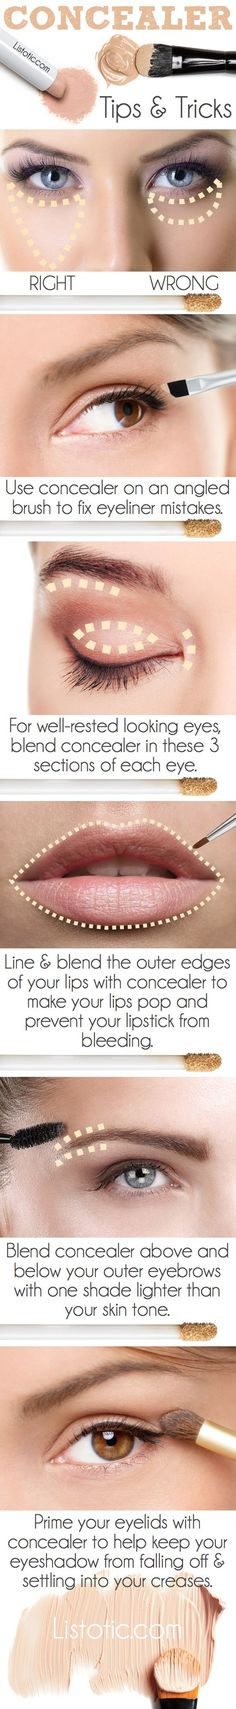 'How To'u use your concealer!!!!